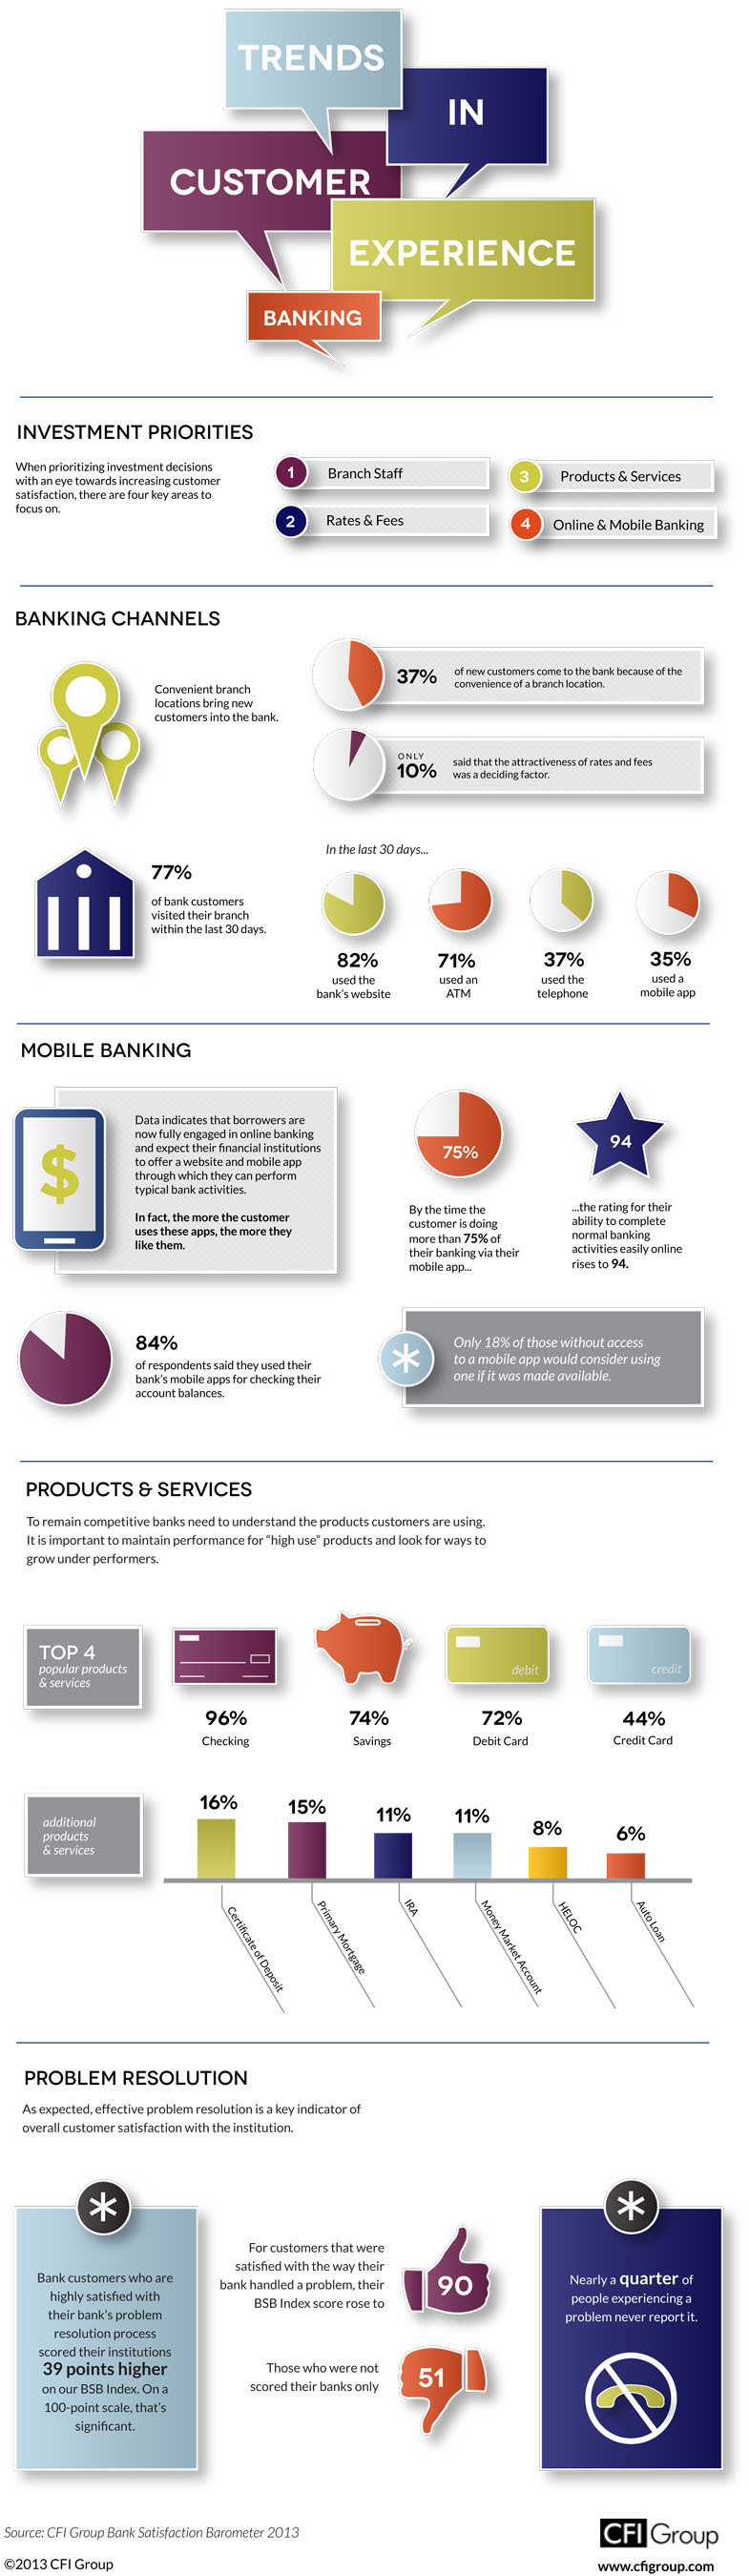 Trends in CX Banking custexp mobileapps onlinebanking